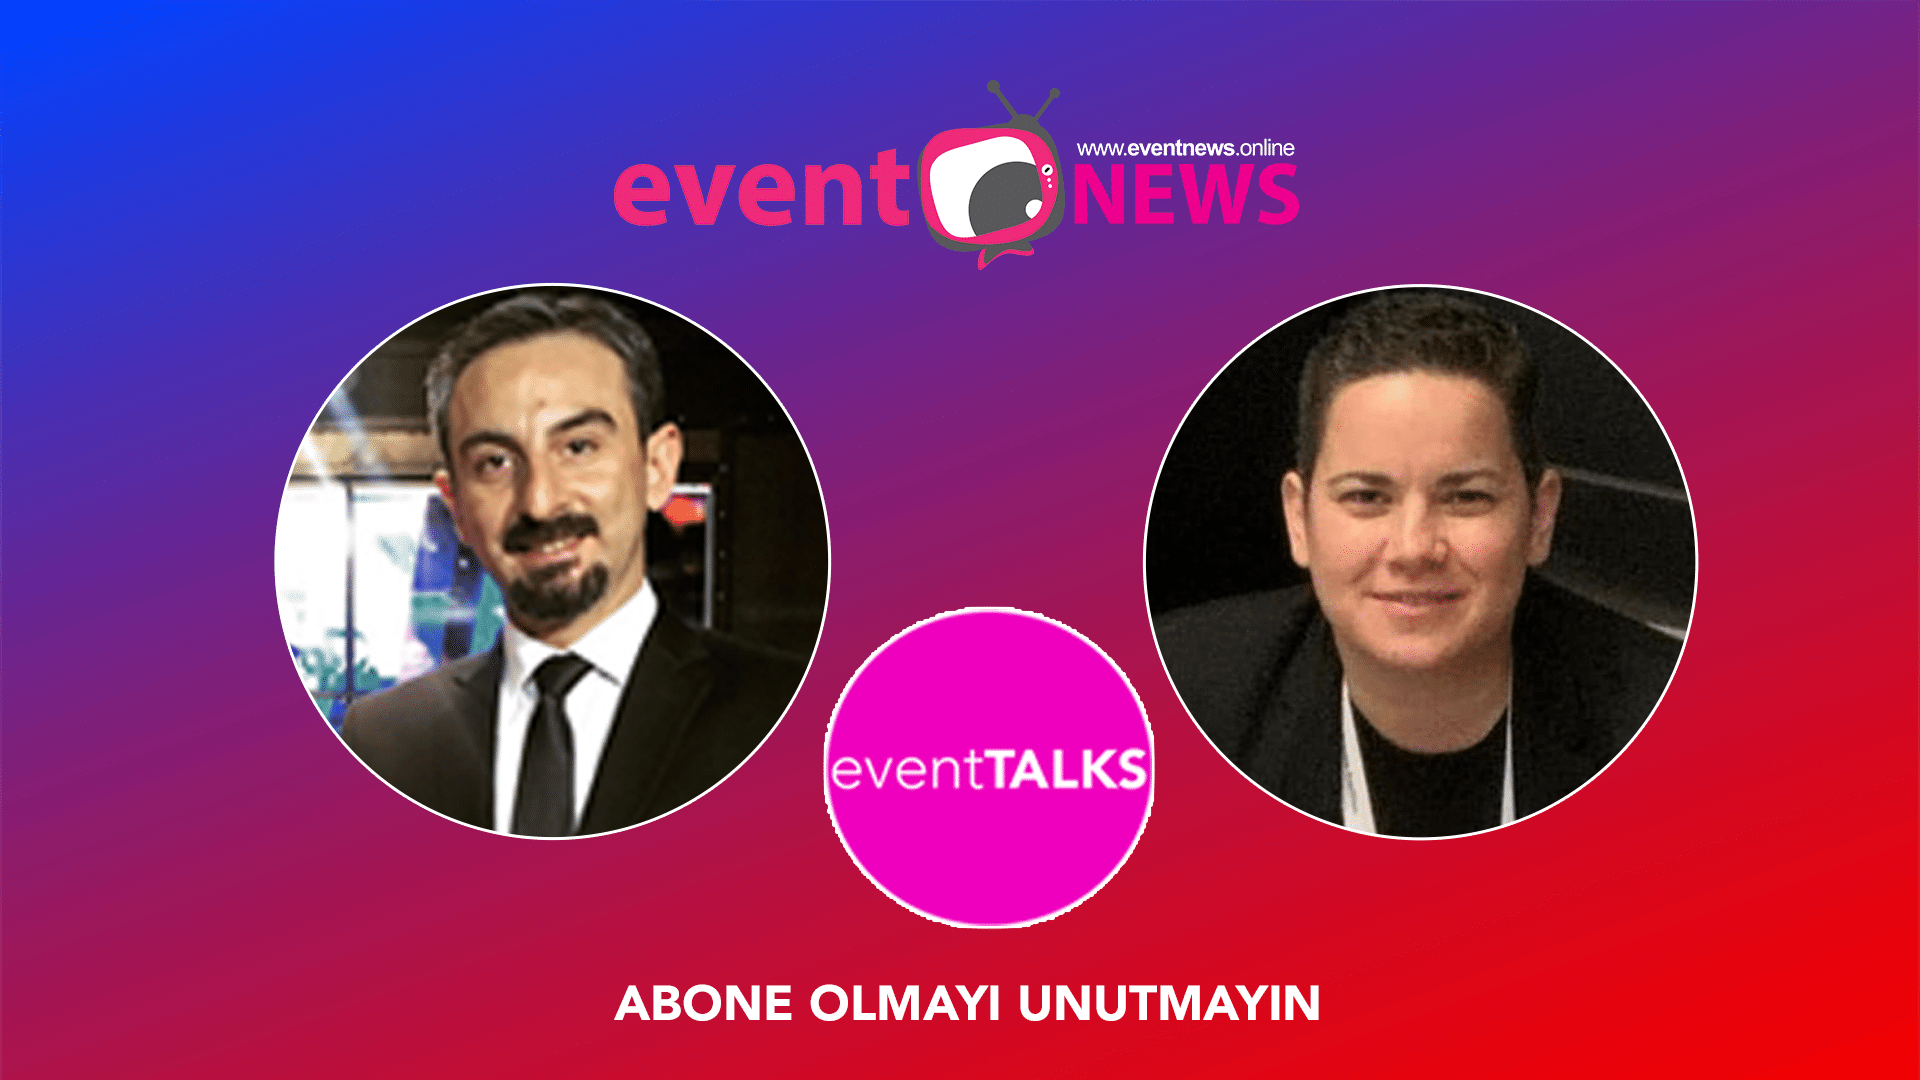 Ece Delen, Event News'in Konuğu Oldu